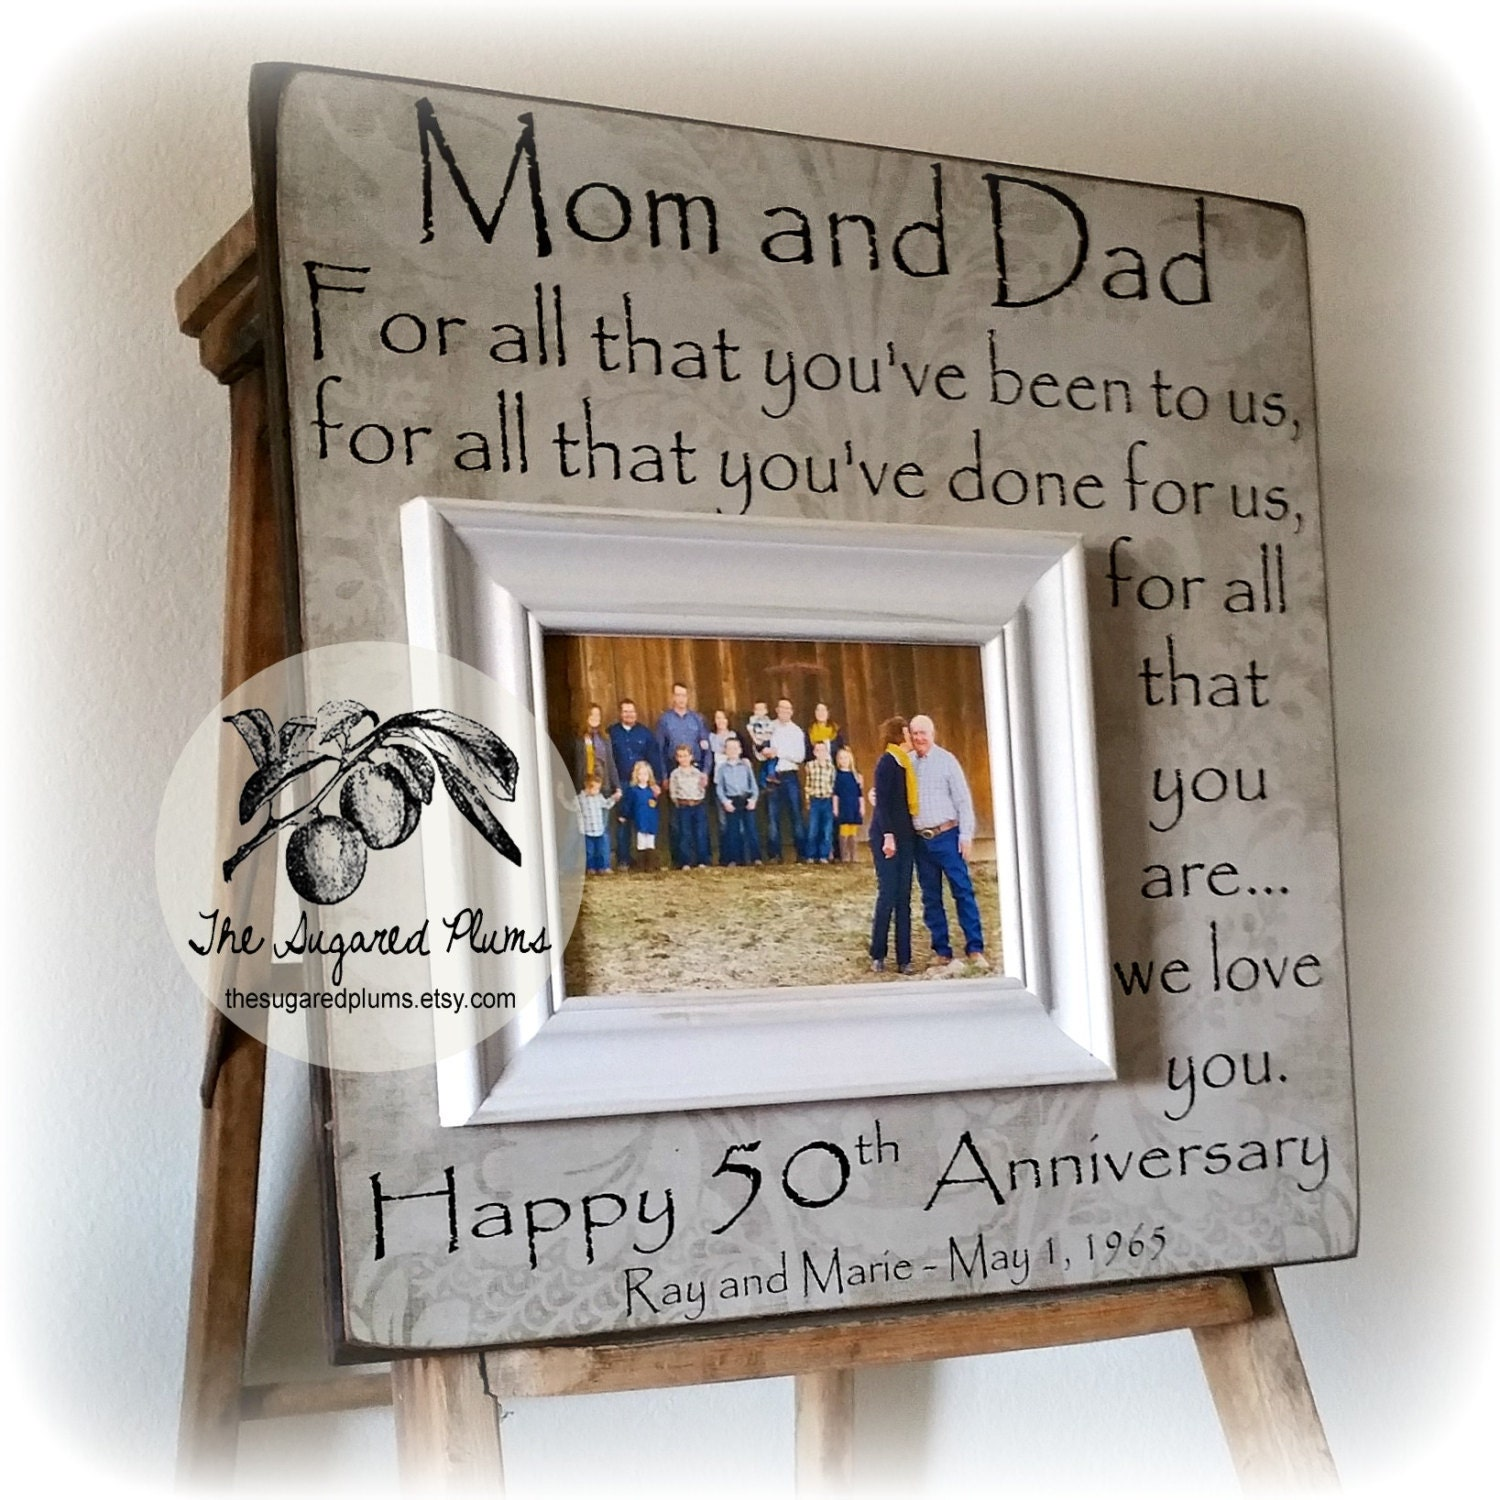 25th Wedding Anniversary Gift For Parents: 50th Anniversary Gifts Parents Anniversary Gift For All That